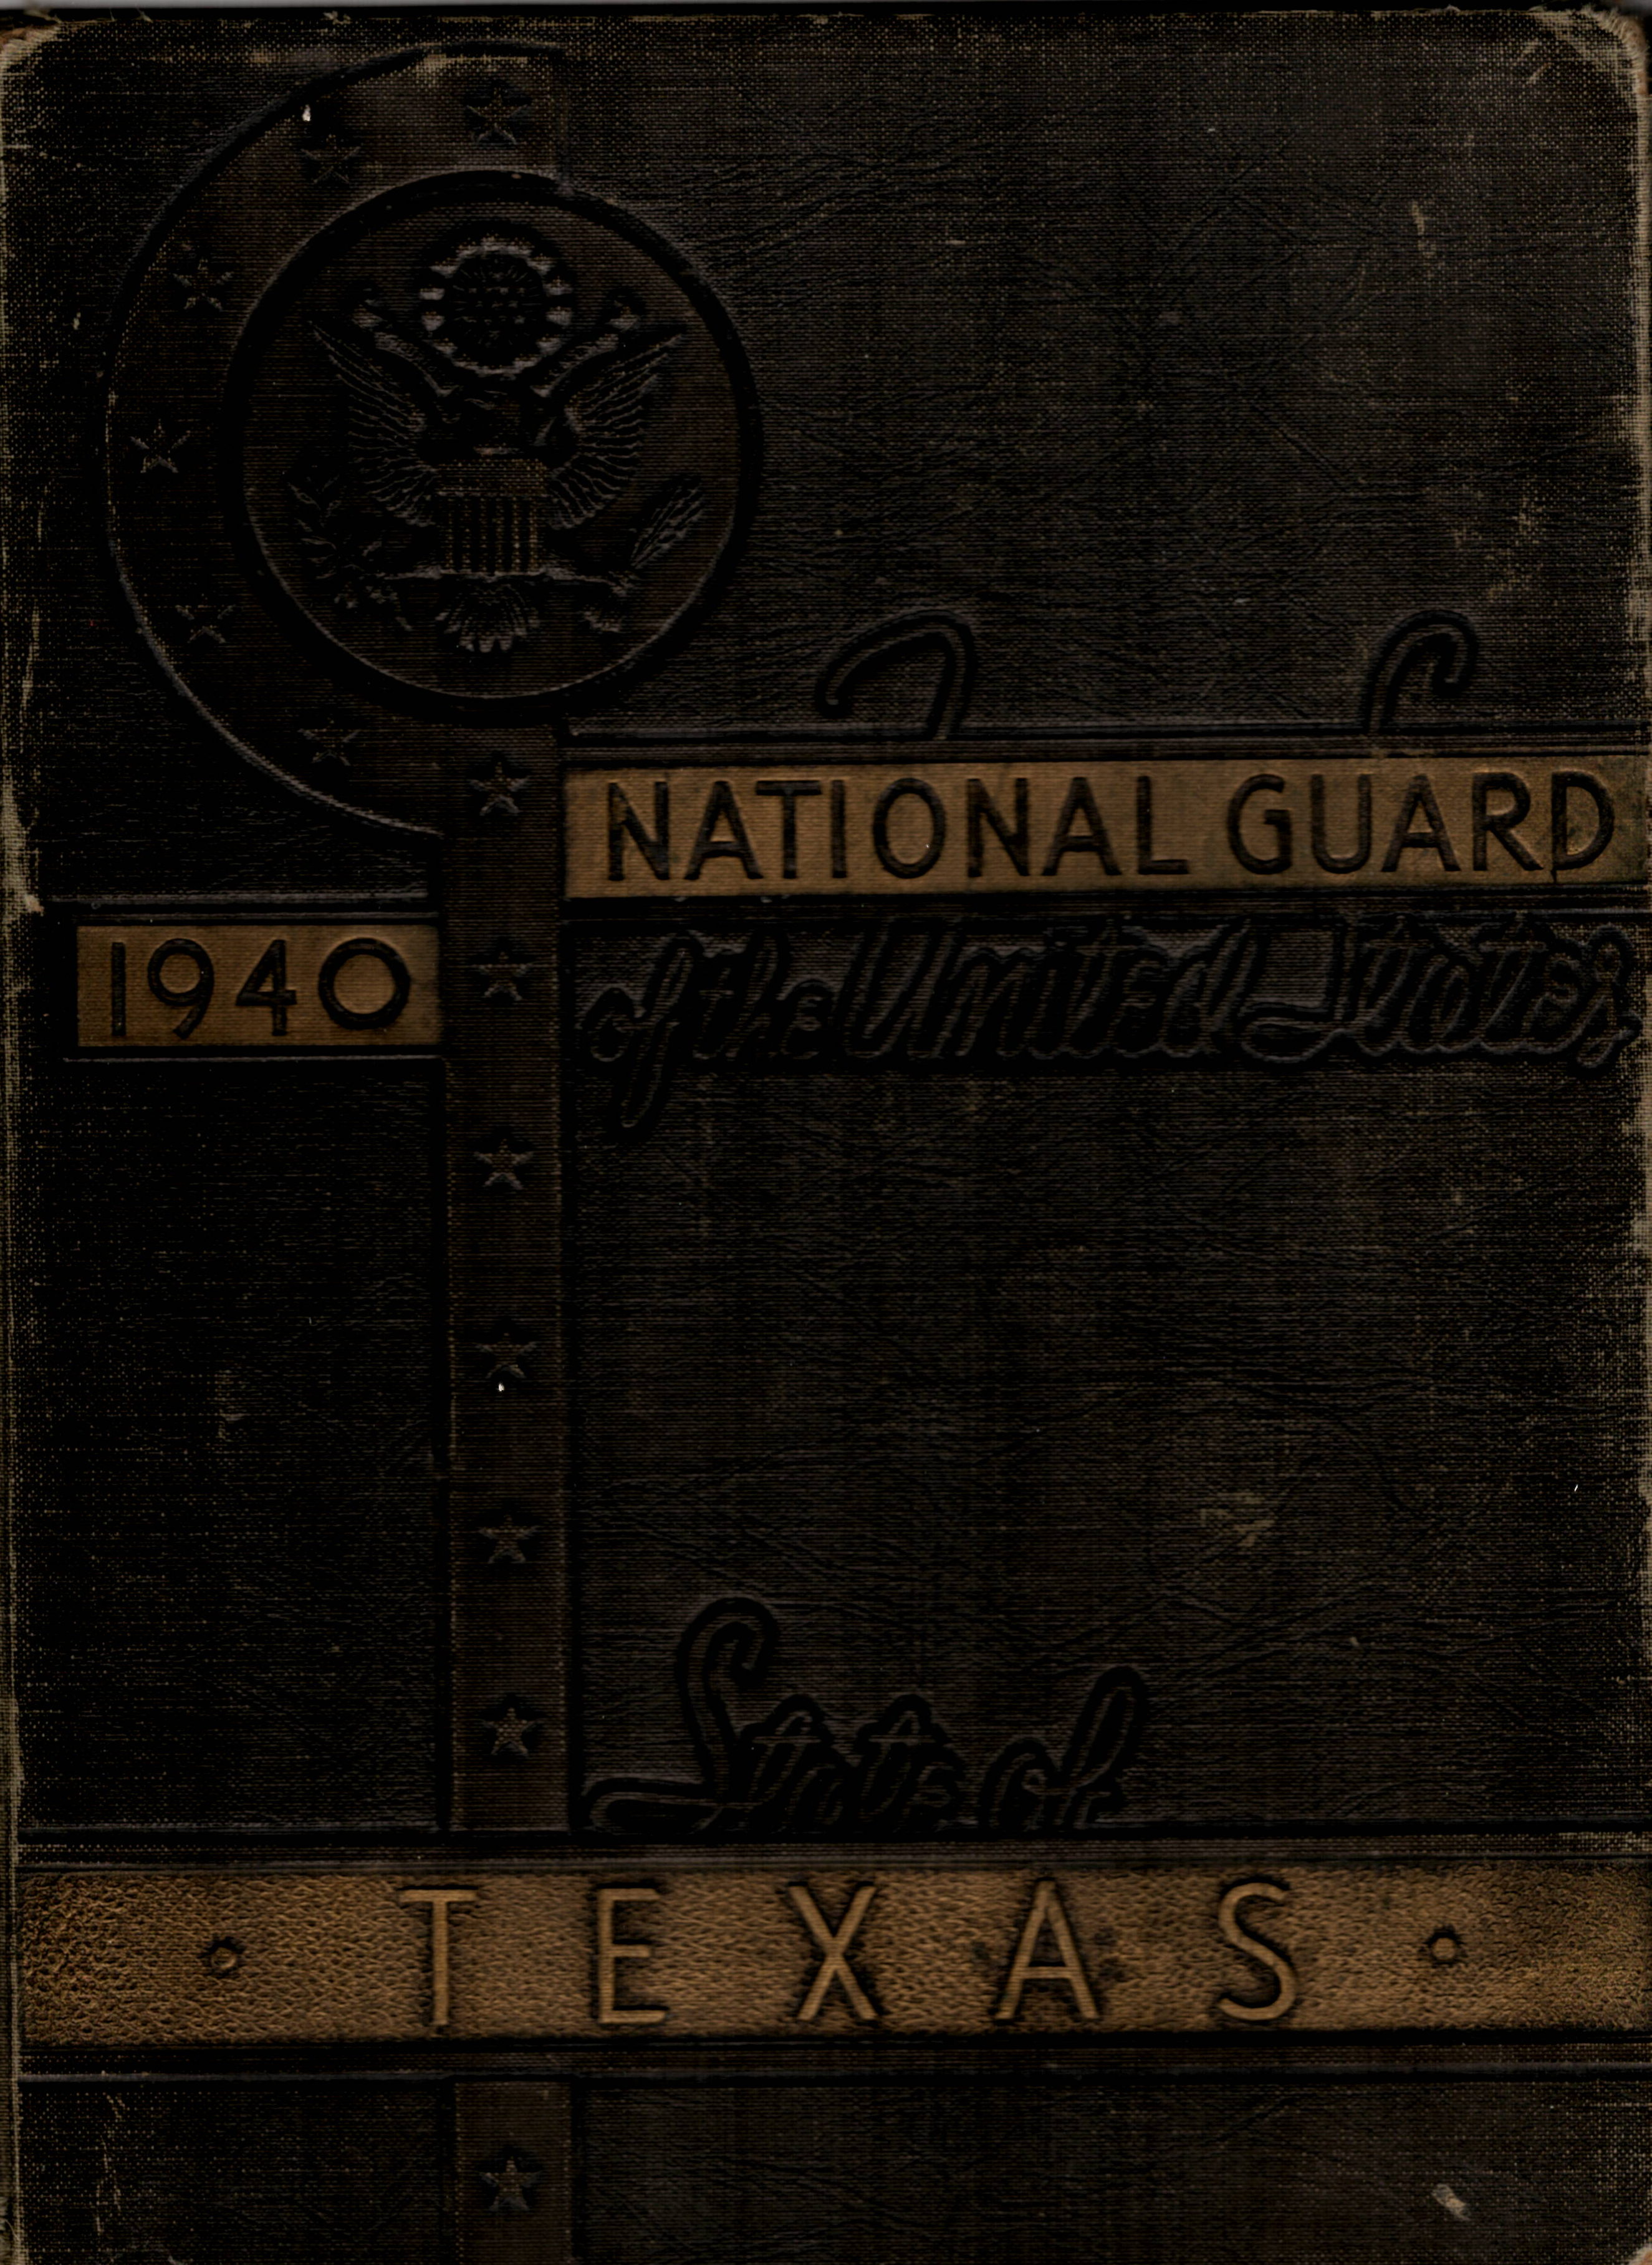 National Guard of the State ofTexas - 1940